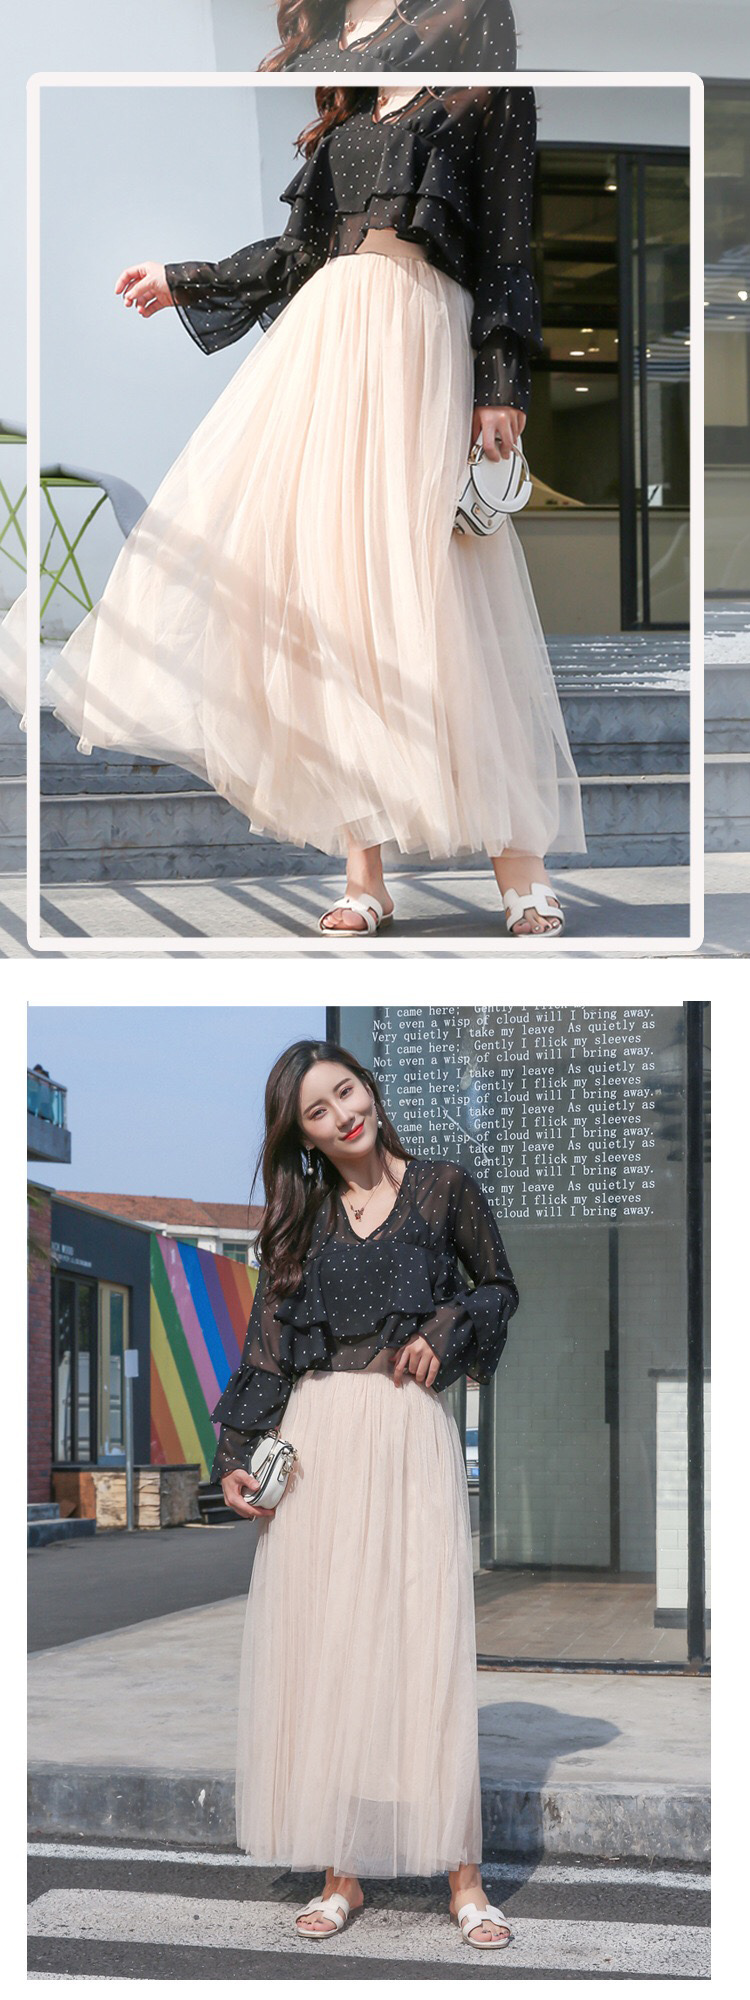 OHRYIYIE 19 Autumn Winter Vintage Skirts Womens Elastic High Waist Tulle Mesh Skirt Long Pleated Tutu Skirt Female Jupe Longue 8